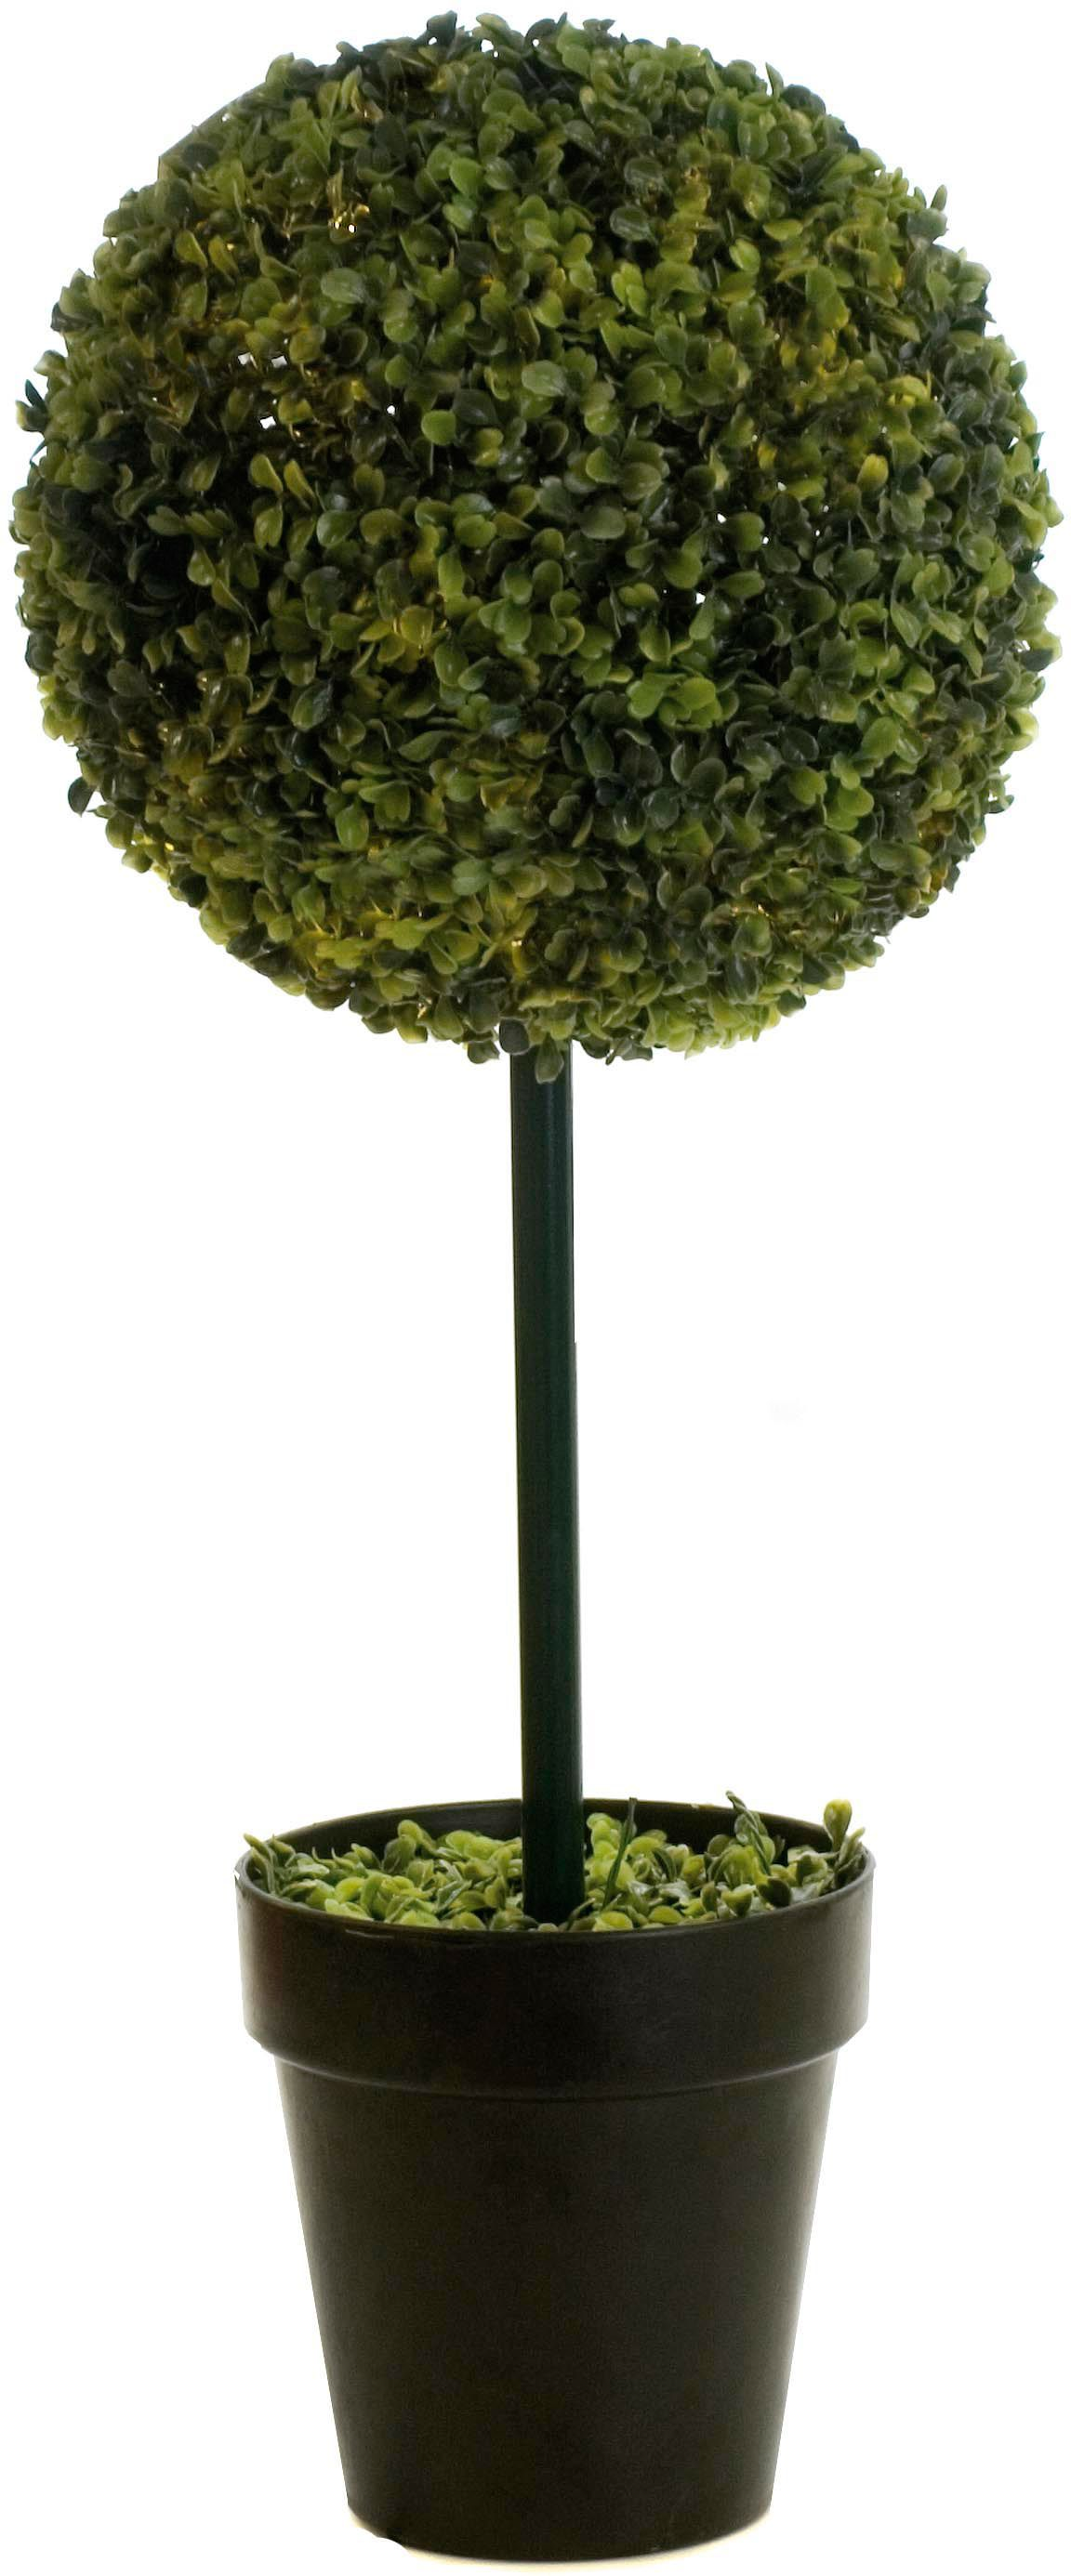 Linea Ball shaped topiary tree, 80cm